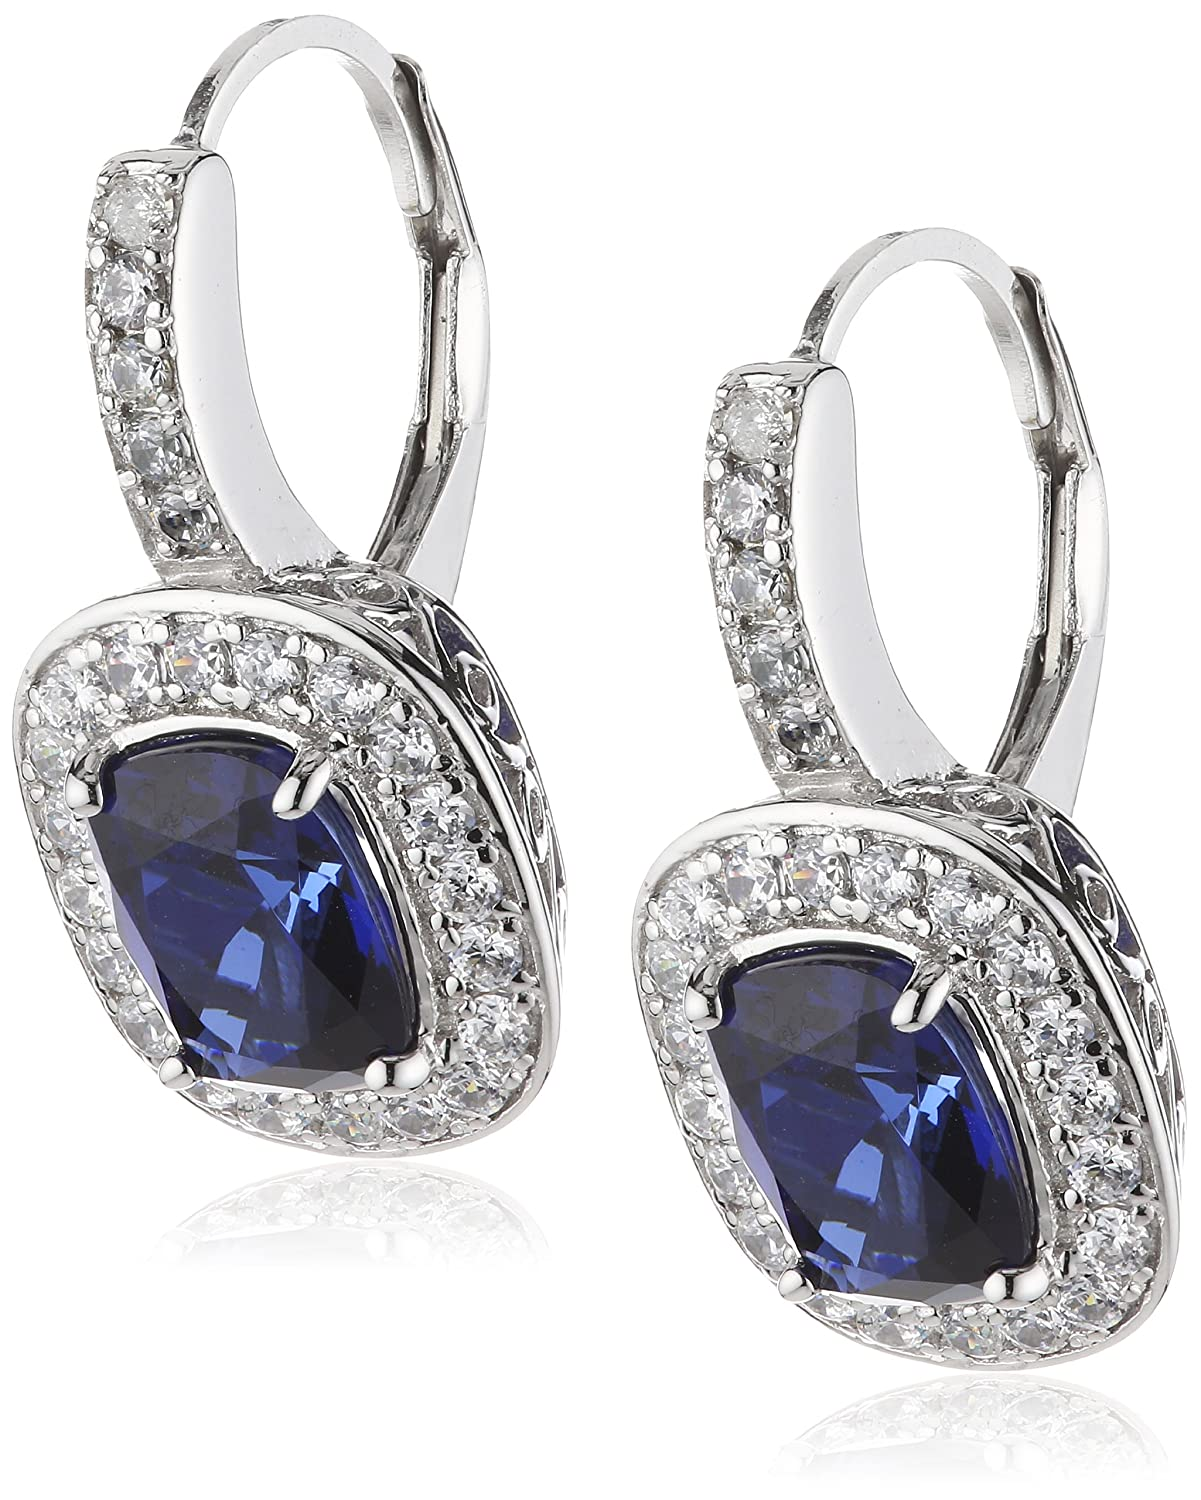 Diamonfire Damen-Ohrhänger 925 Sterling Silber Zirkonia Royal Colours Linie blau 62/1430/1/089 bestellen